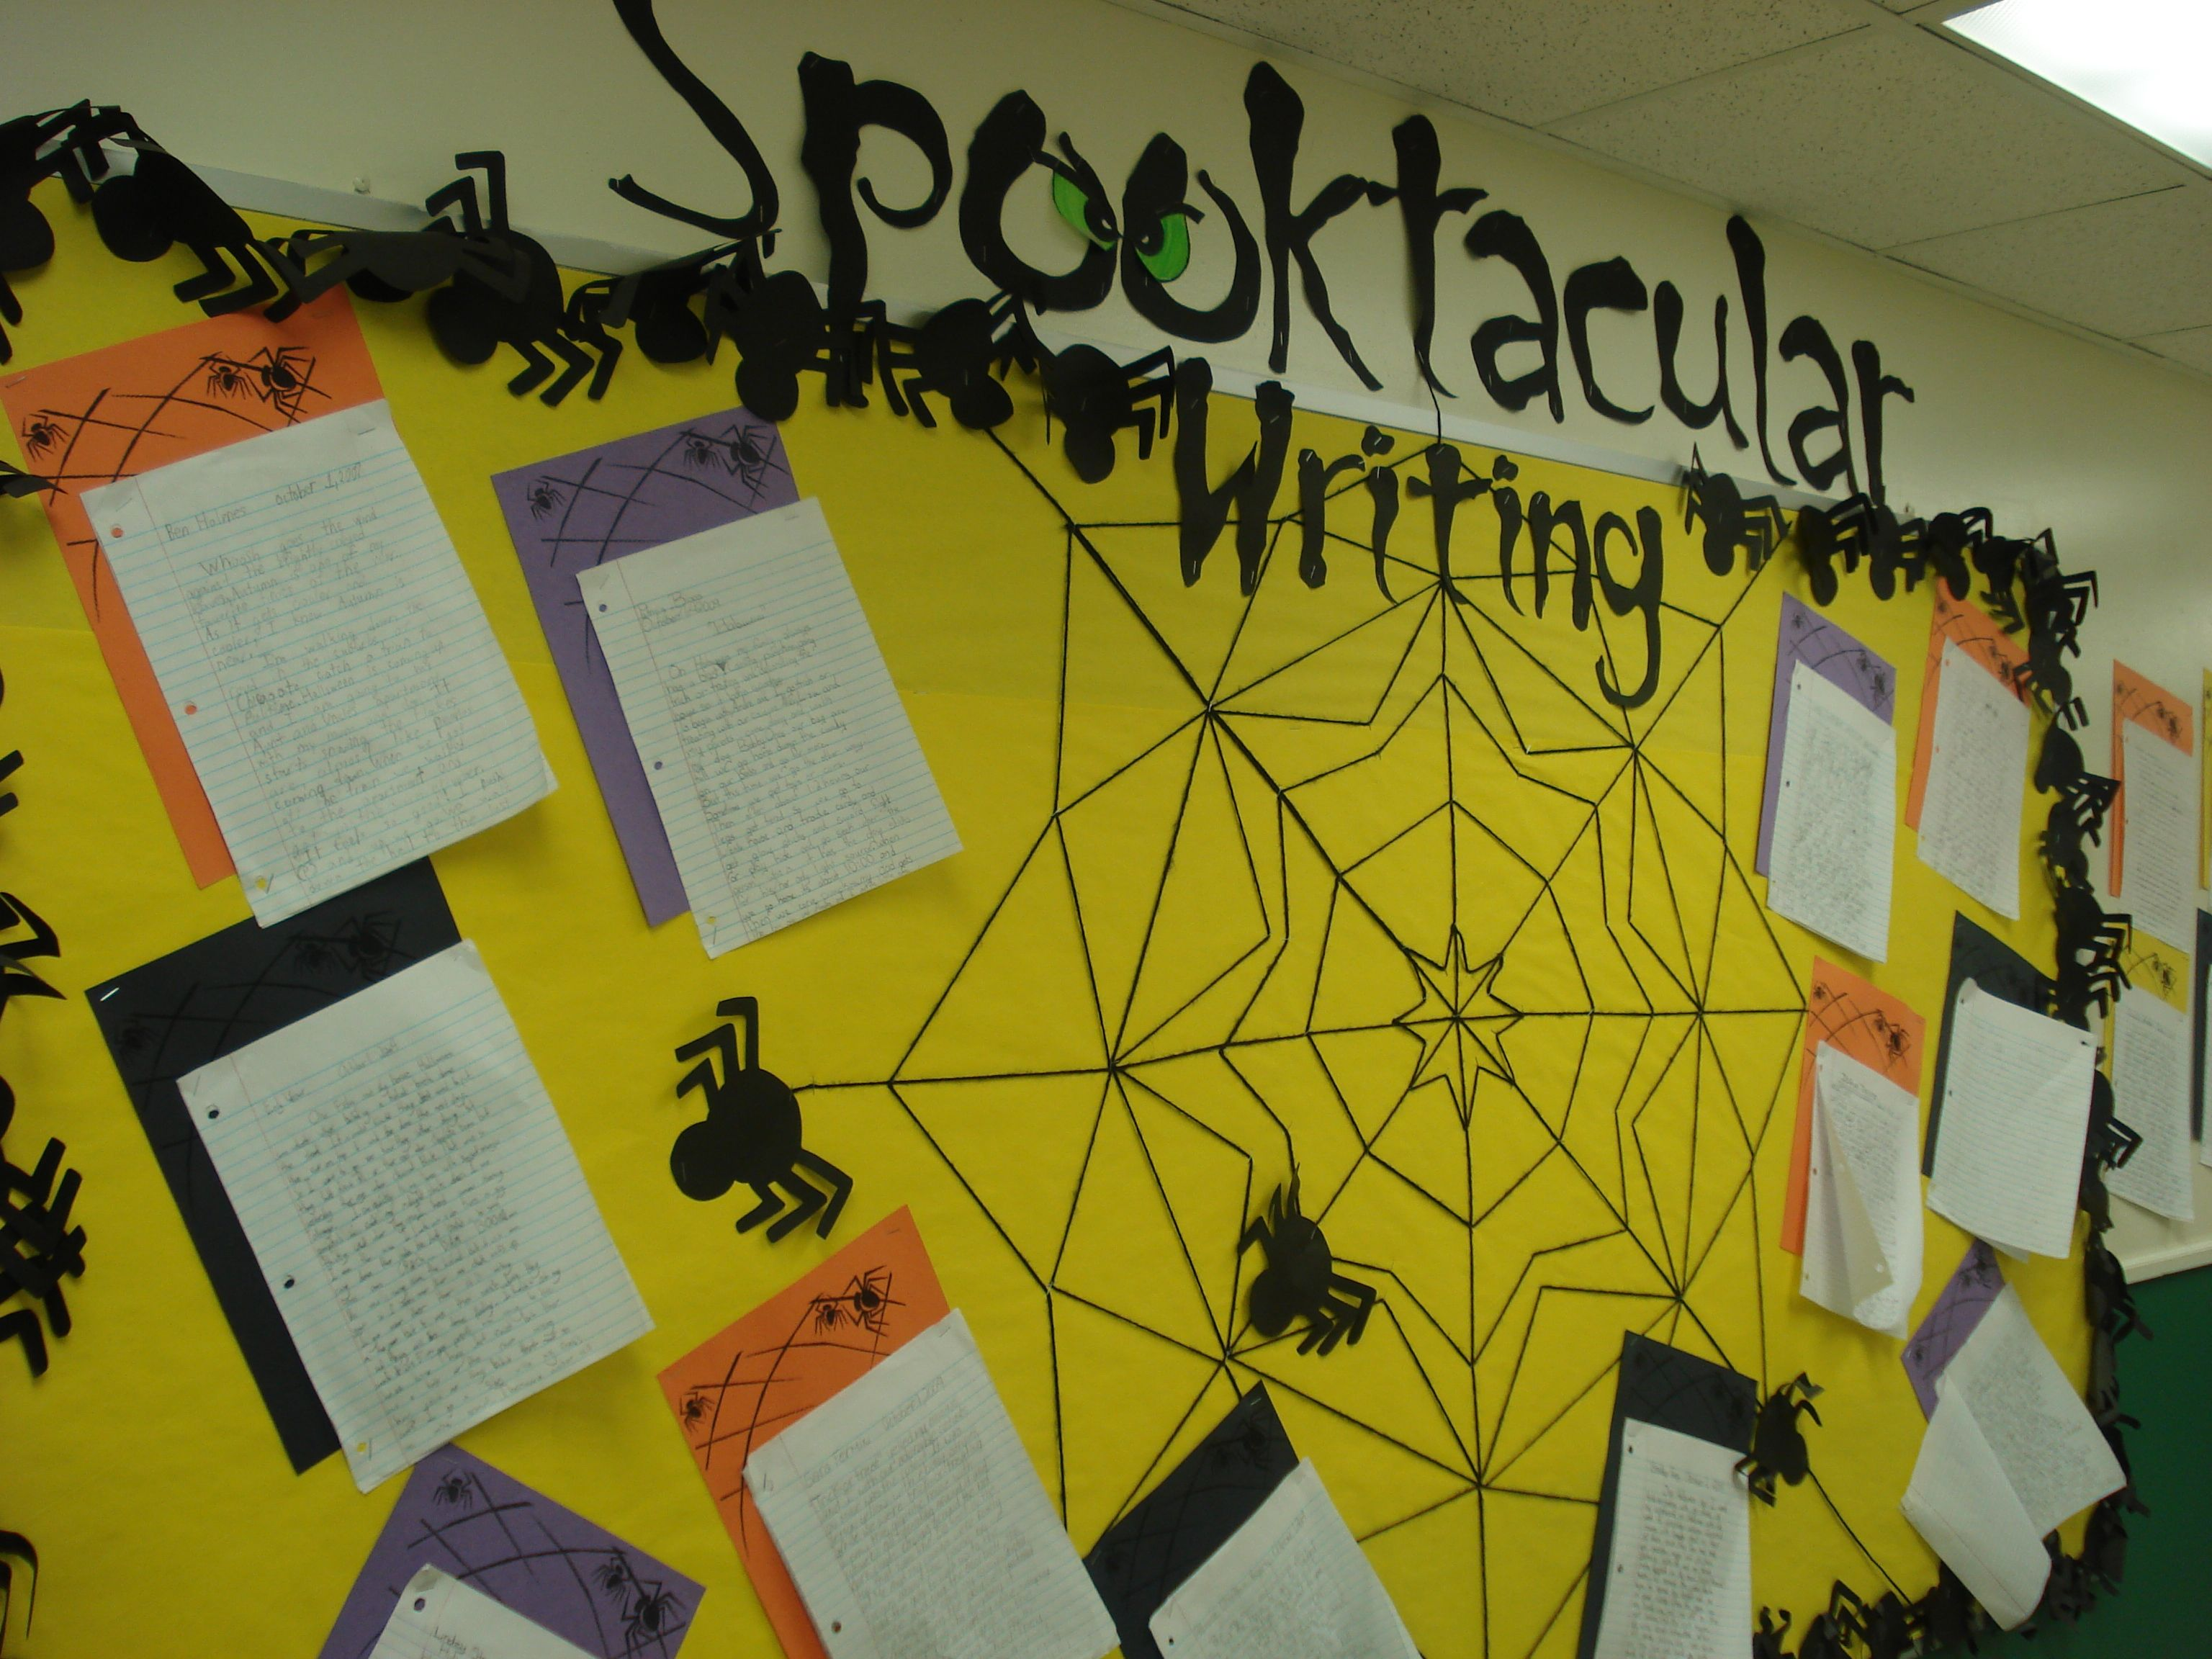 halloween writing bulletin board bulletin board ideas halloween writing bulletin board kelly teske goldsworthy frazier s we have to do this the scary stories